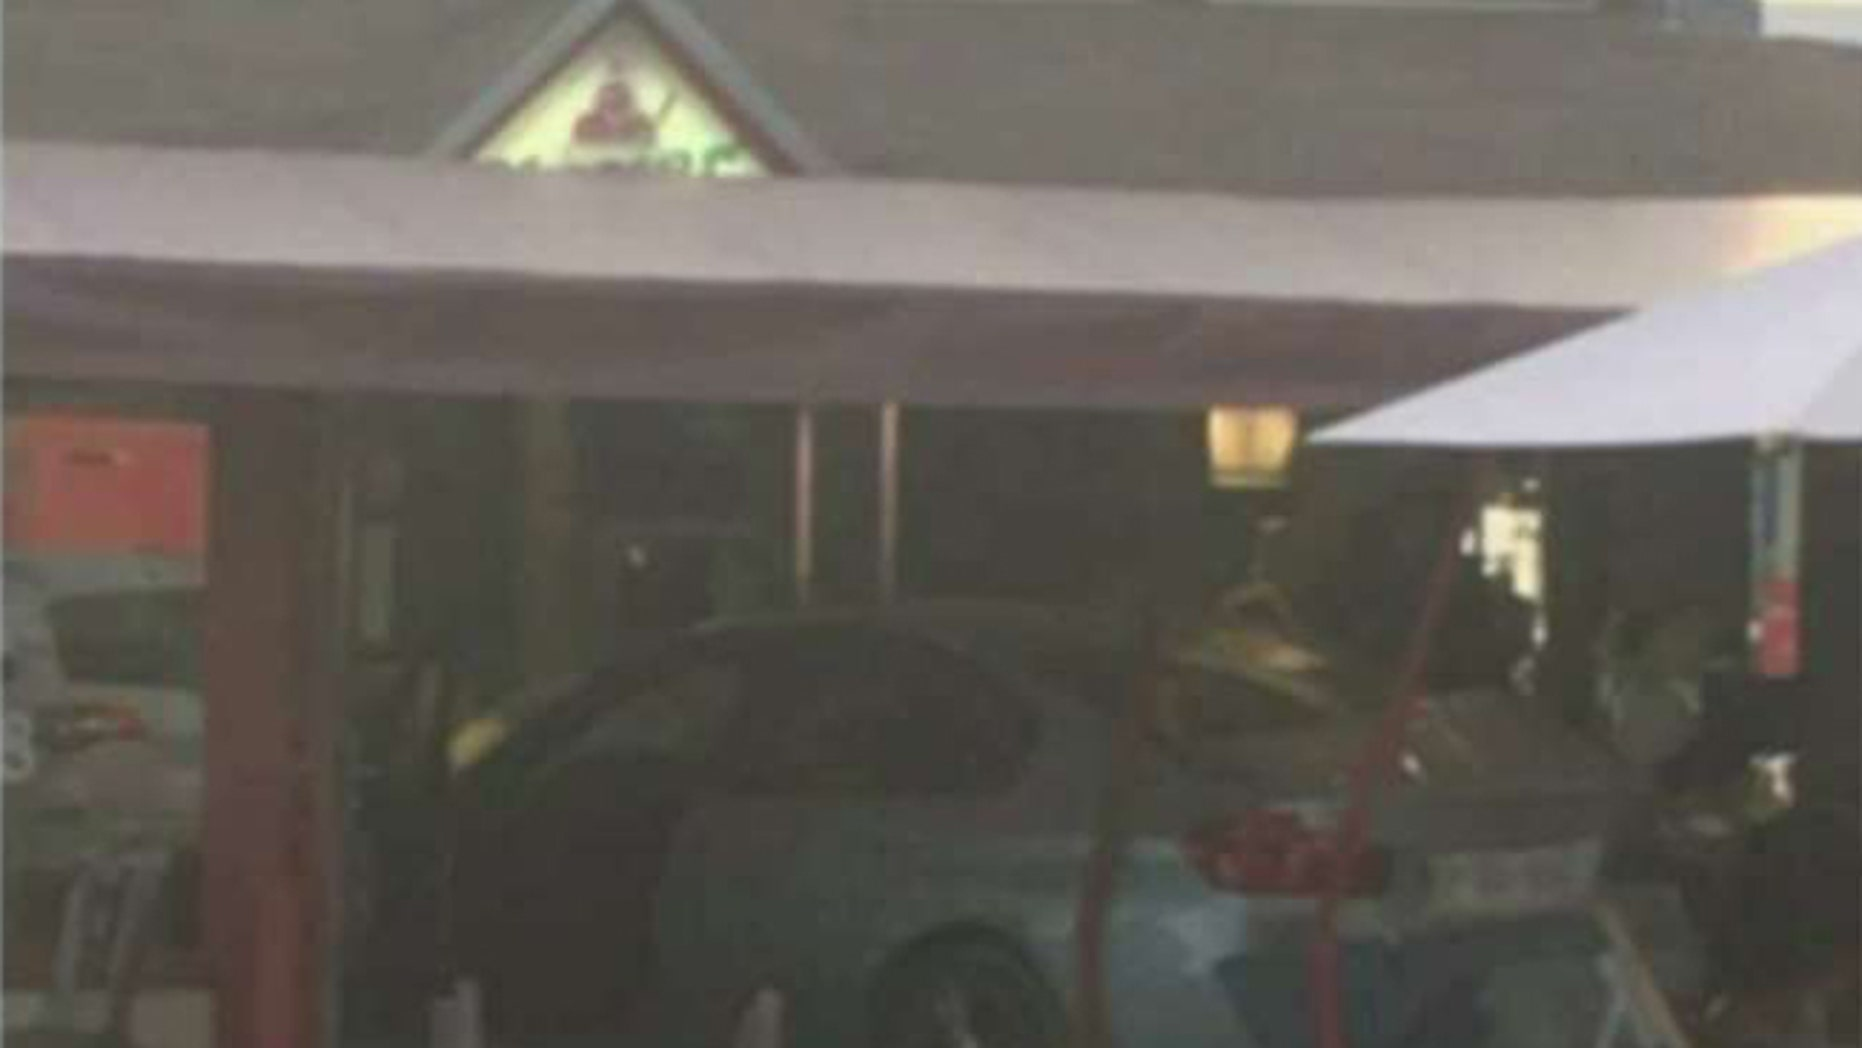 A man intentionally slammed his vehicle into patrons at a pizzeria near Paris on Monday, police say.